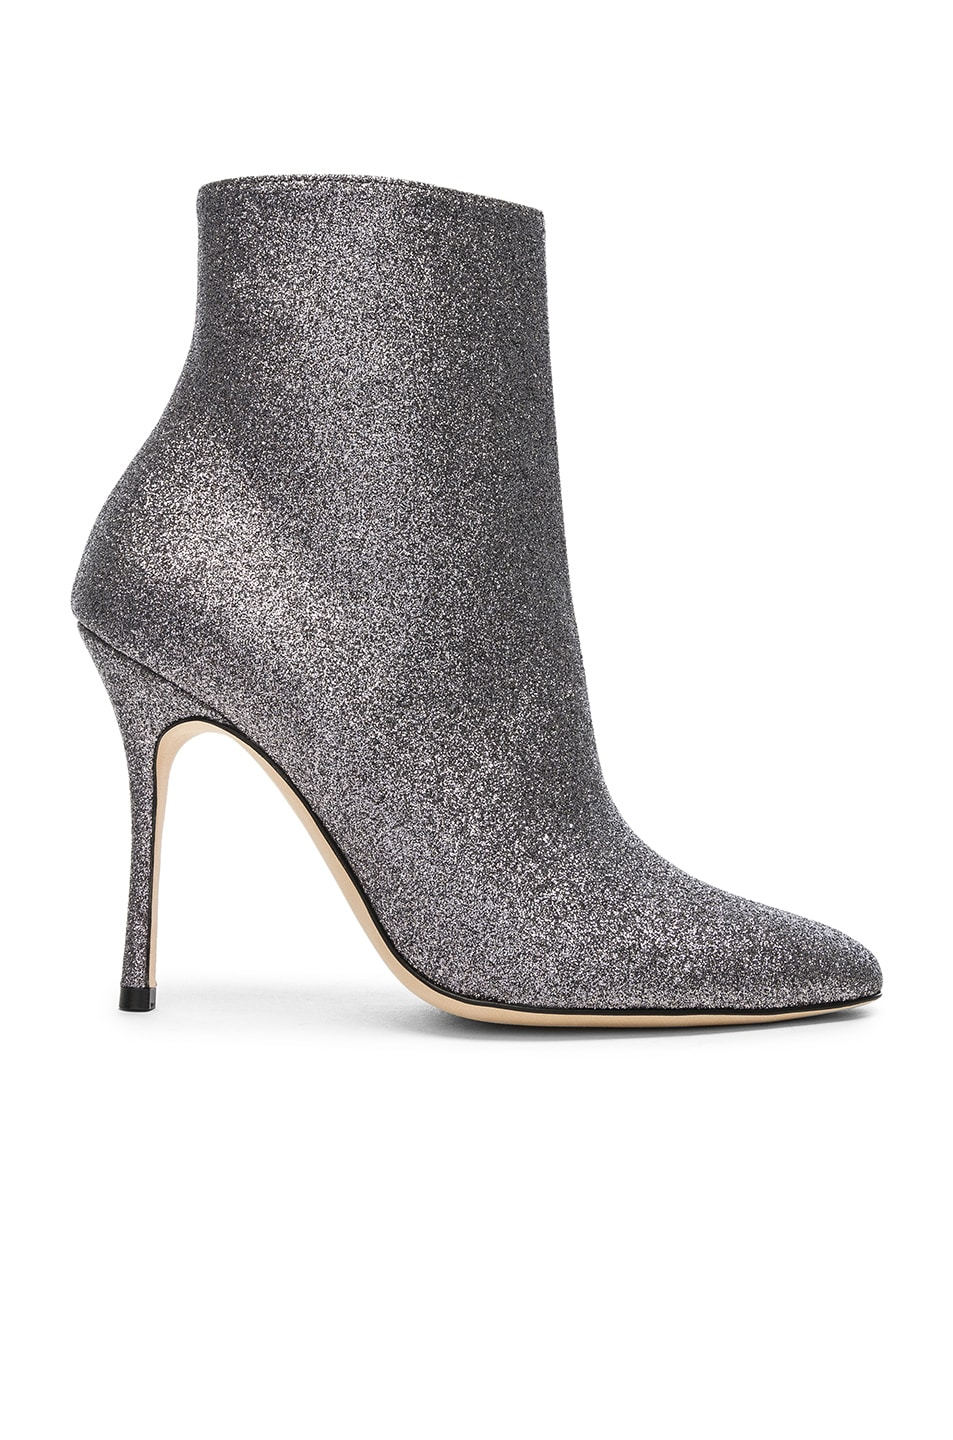 Image 1 of Manolo Blahnik Glitter Insopo 105 Boots in Anthracite